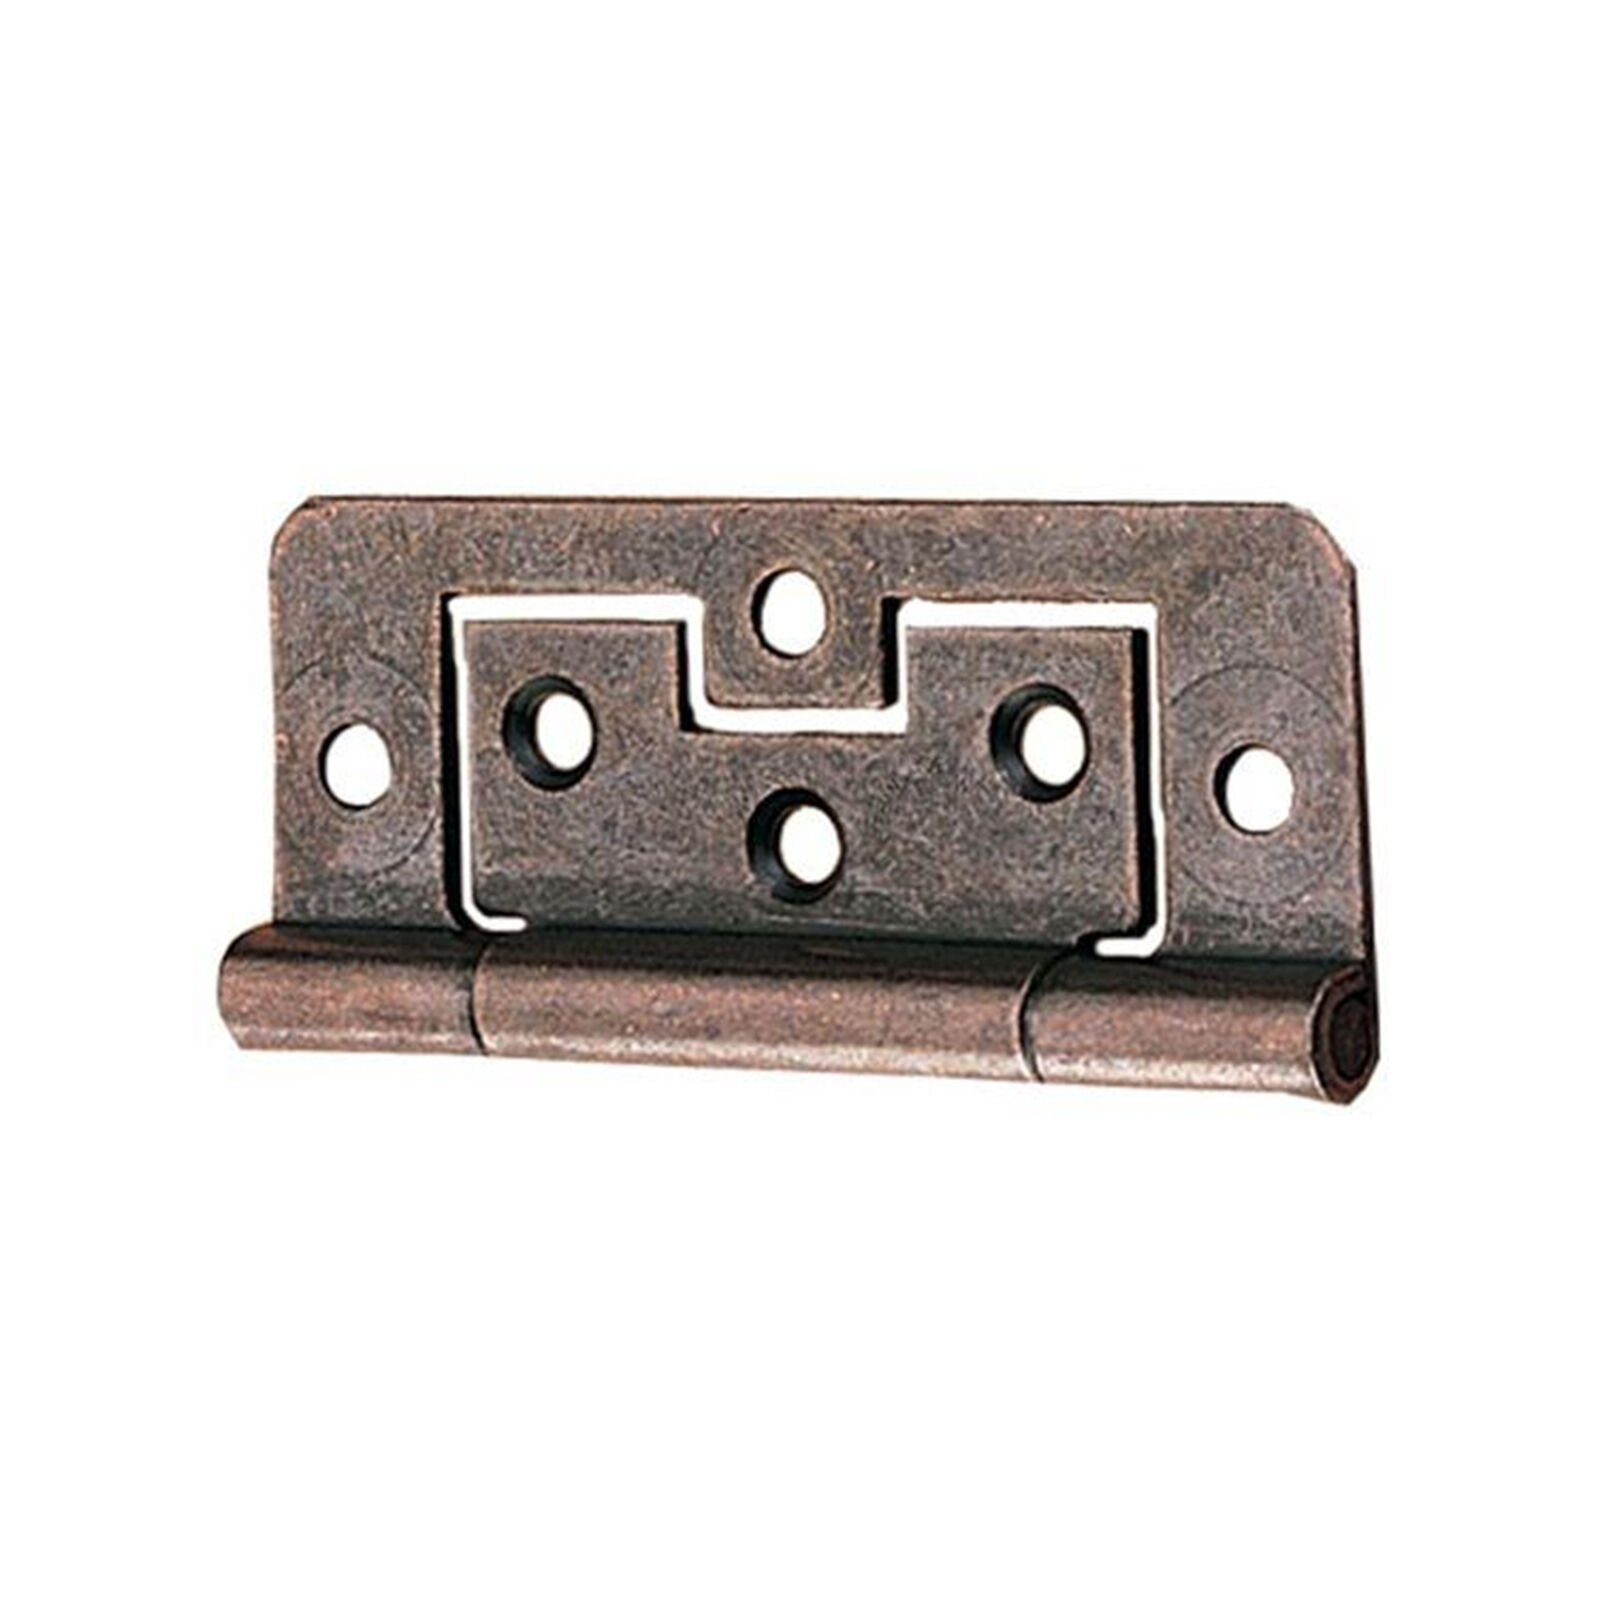 5 8 X 1 1 2 Non Mortise Cabinet Hinge Pair For Sale Online